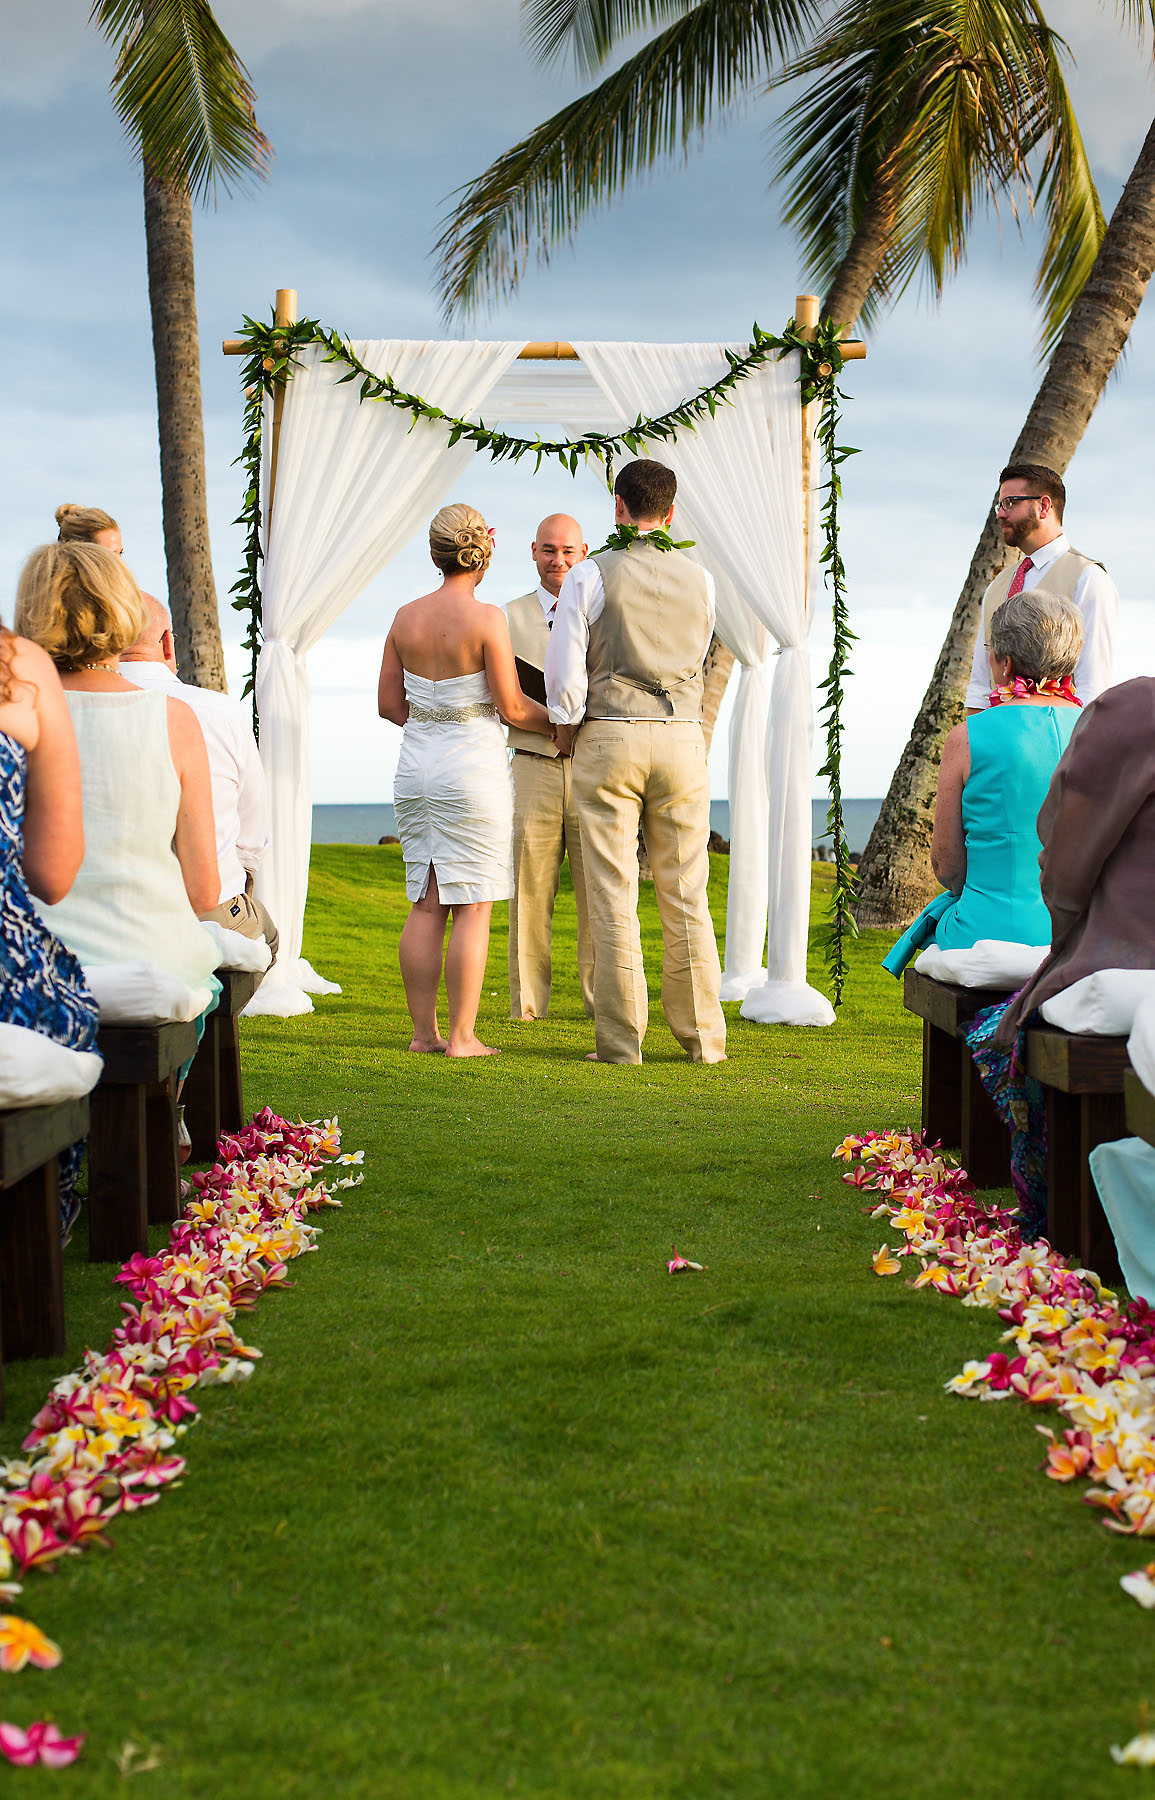 Beach Wedding Ceremony, Maui, Hawaii with Palm Trees in the Background. Photo Credit: Jared Lawson Photography